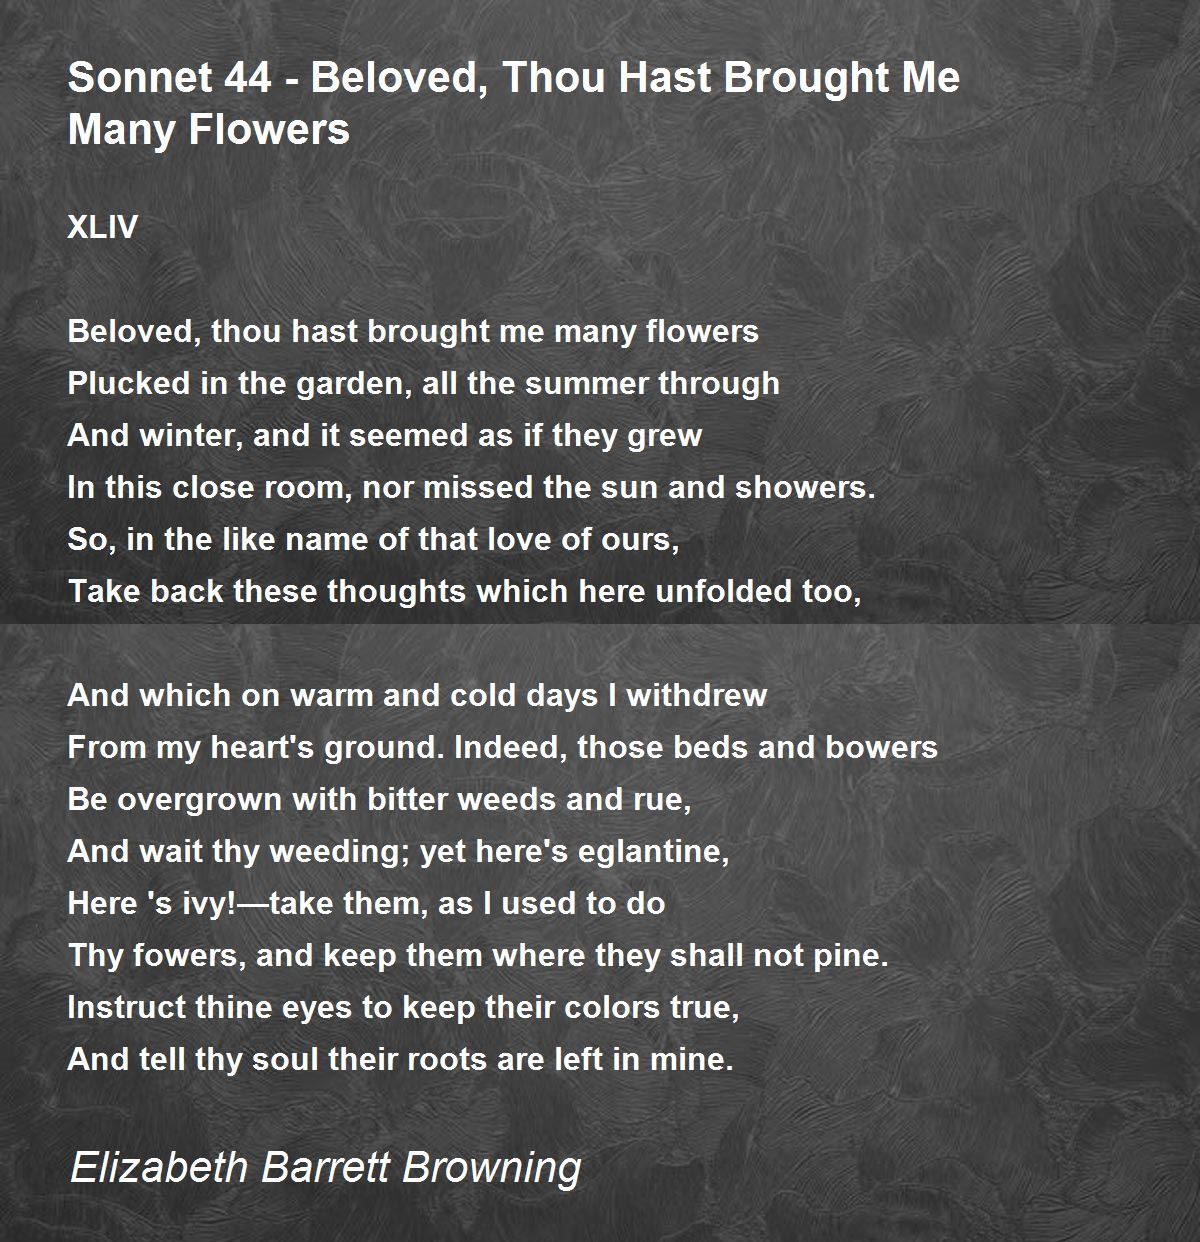 """elizabeth browning sonnet 14 Elizabeth barrett browning sonnet 14 theme: in this poem ebb has accepted her suitor""""s love, but now makes demands regarding the nature of that loveshe urges her lover to love her not for any particular reason, but simply because he loves her """"for love""""s sake only."""